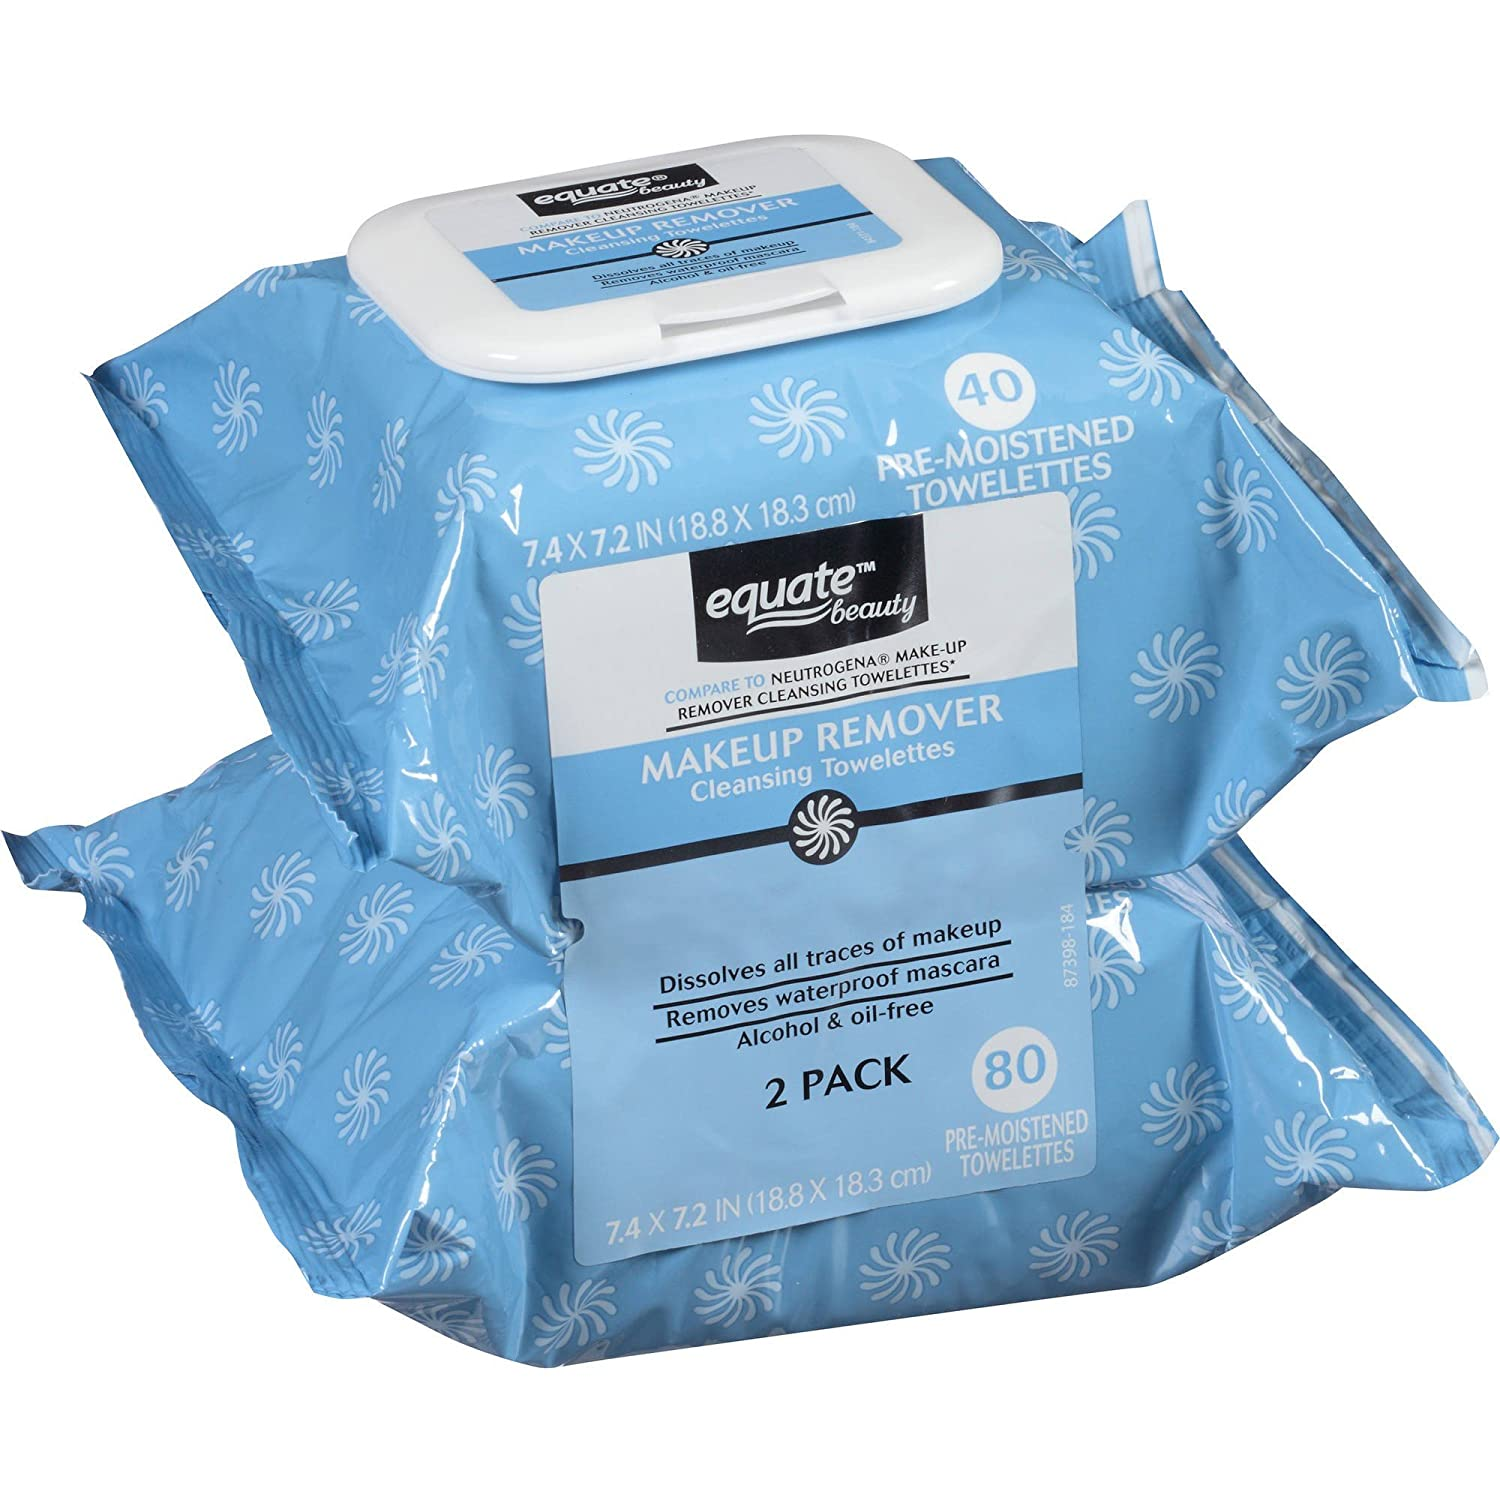 Equate Makeup Remover Cleansing Towelettes, 40 Ct, 2 Pk